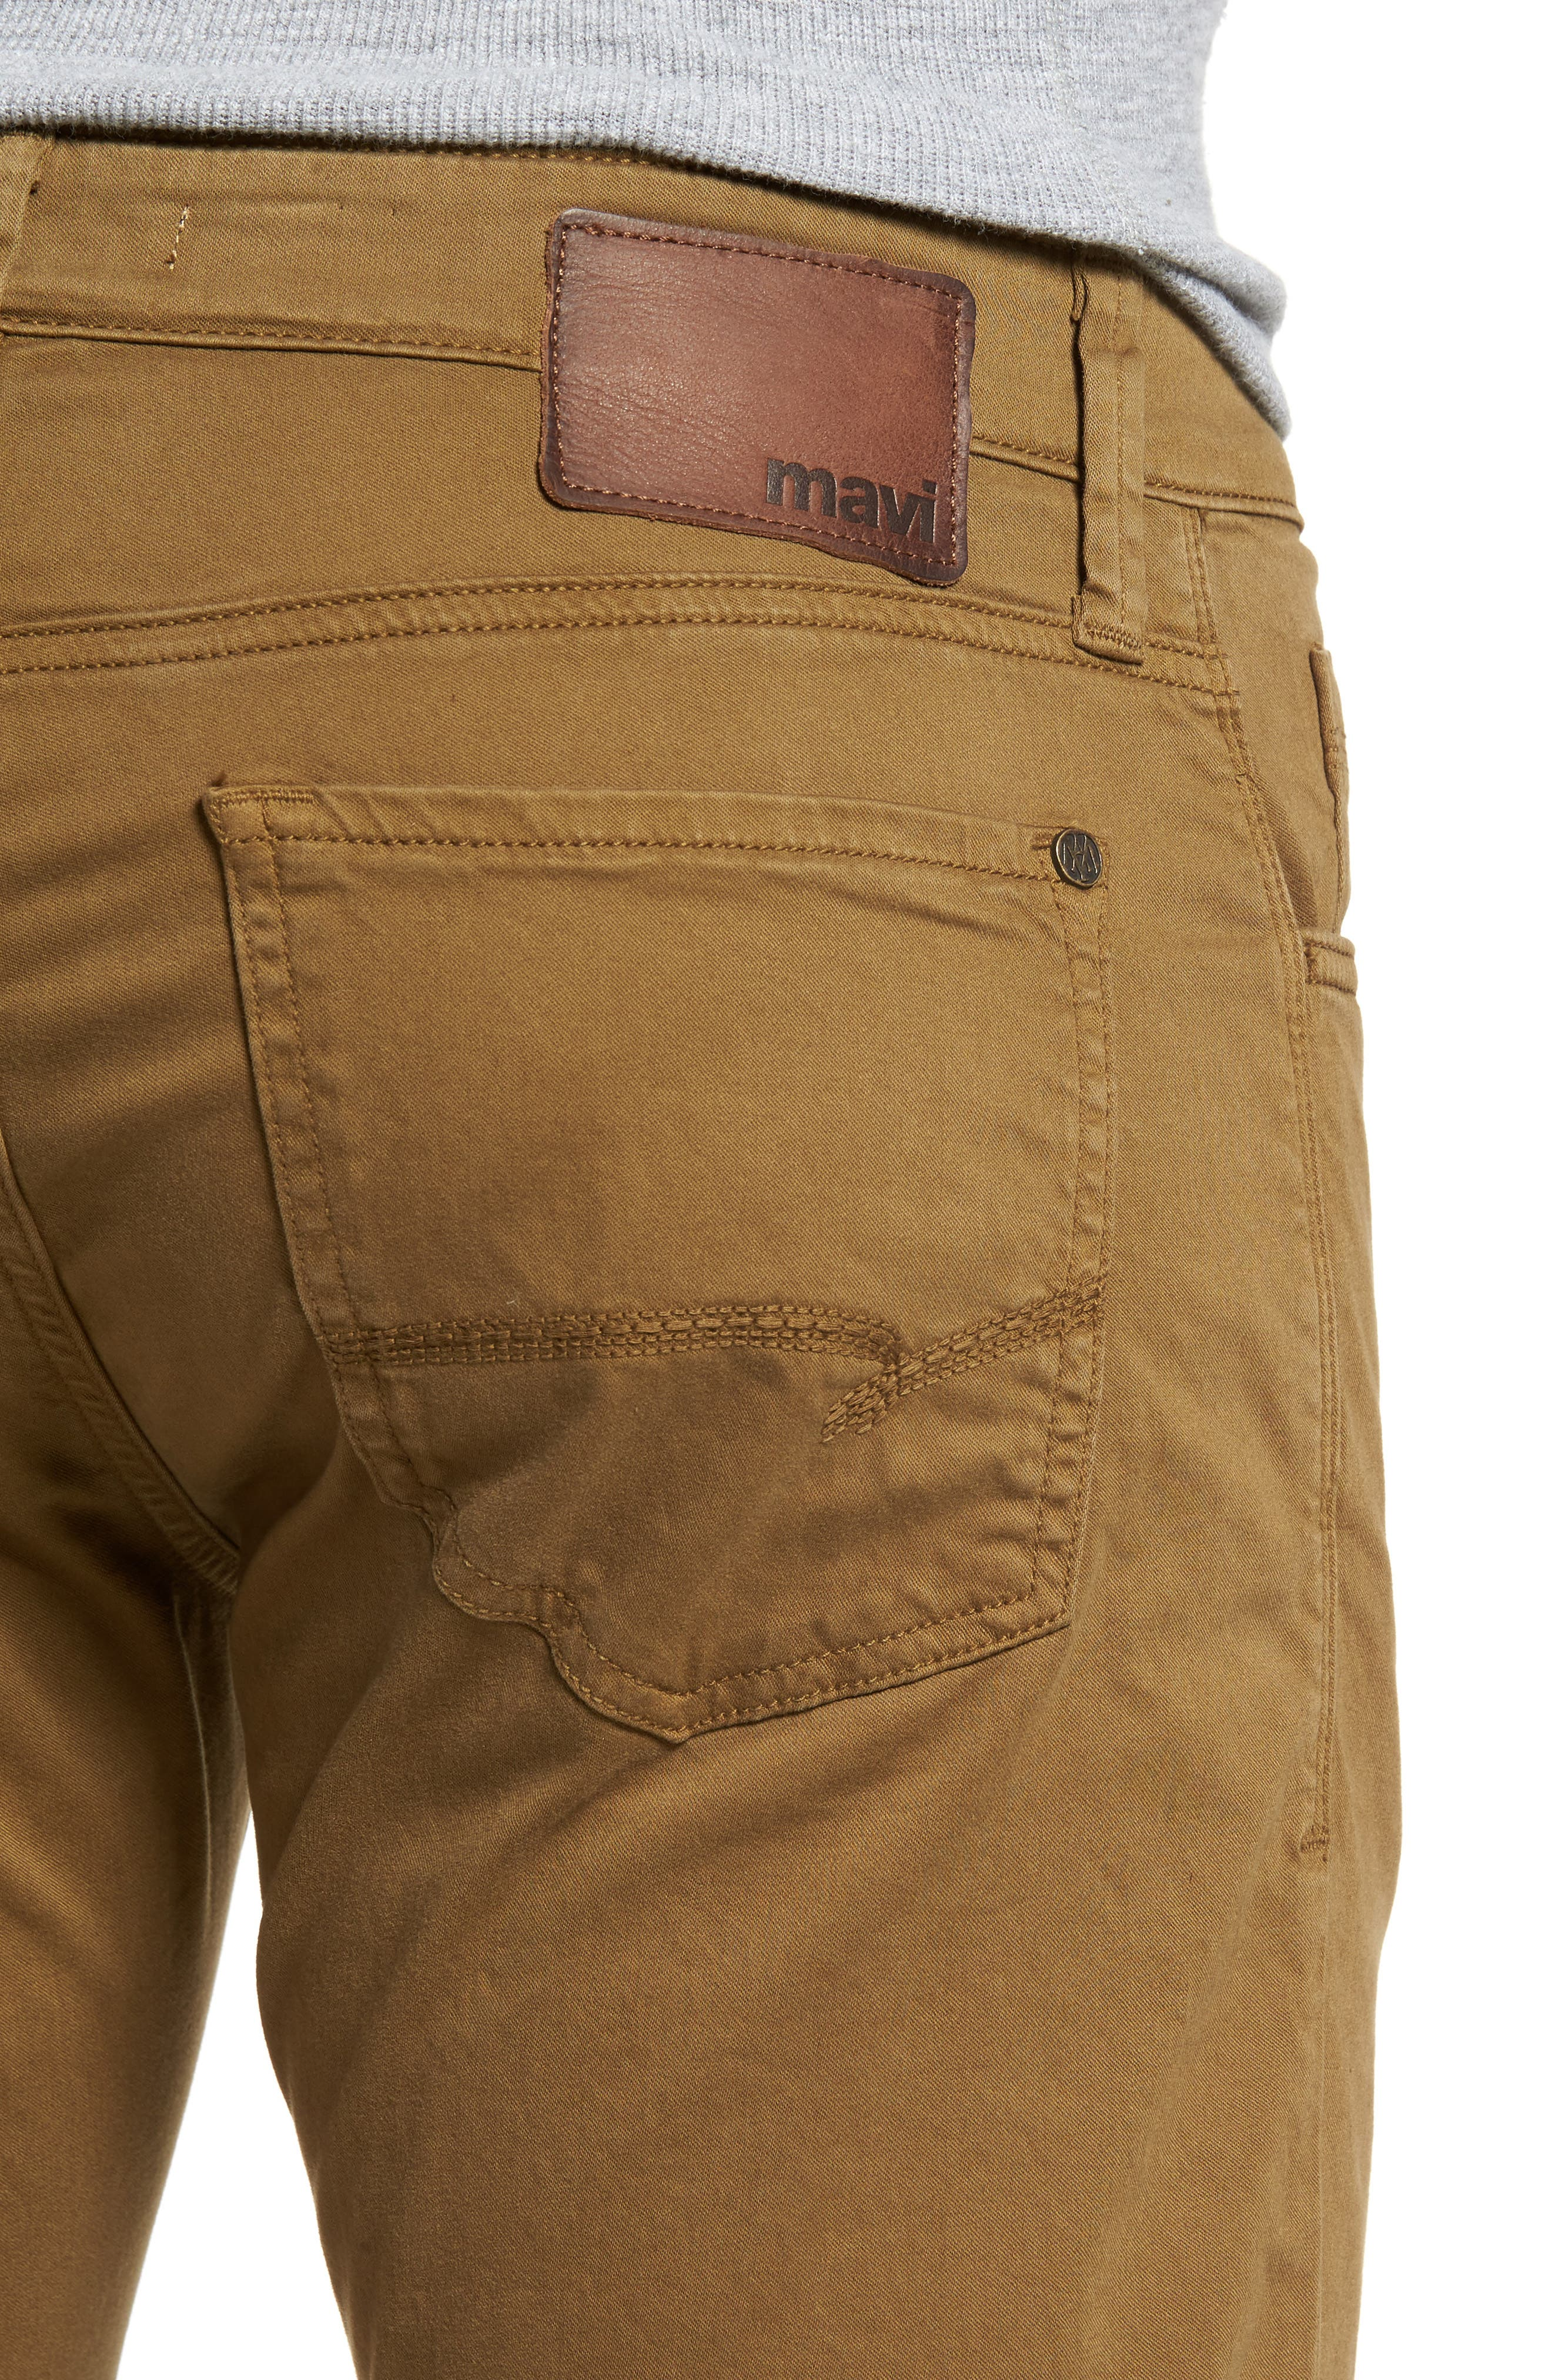 Zach Straight Leg Twill Pants,                             Alternate thumbnail 4, color,                             200